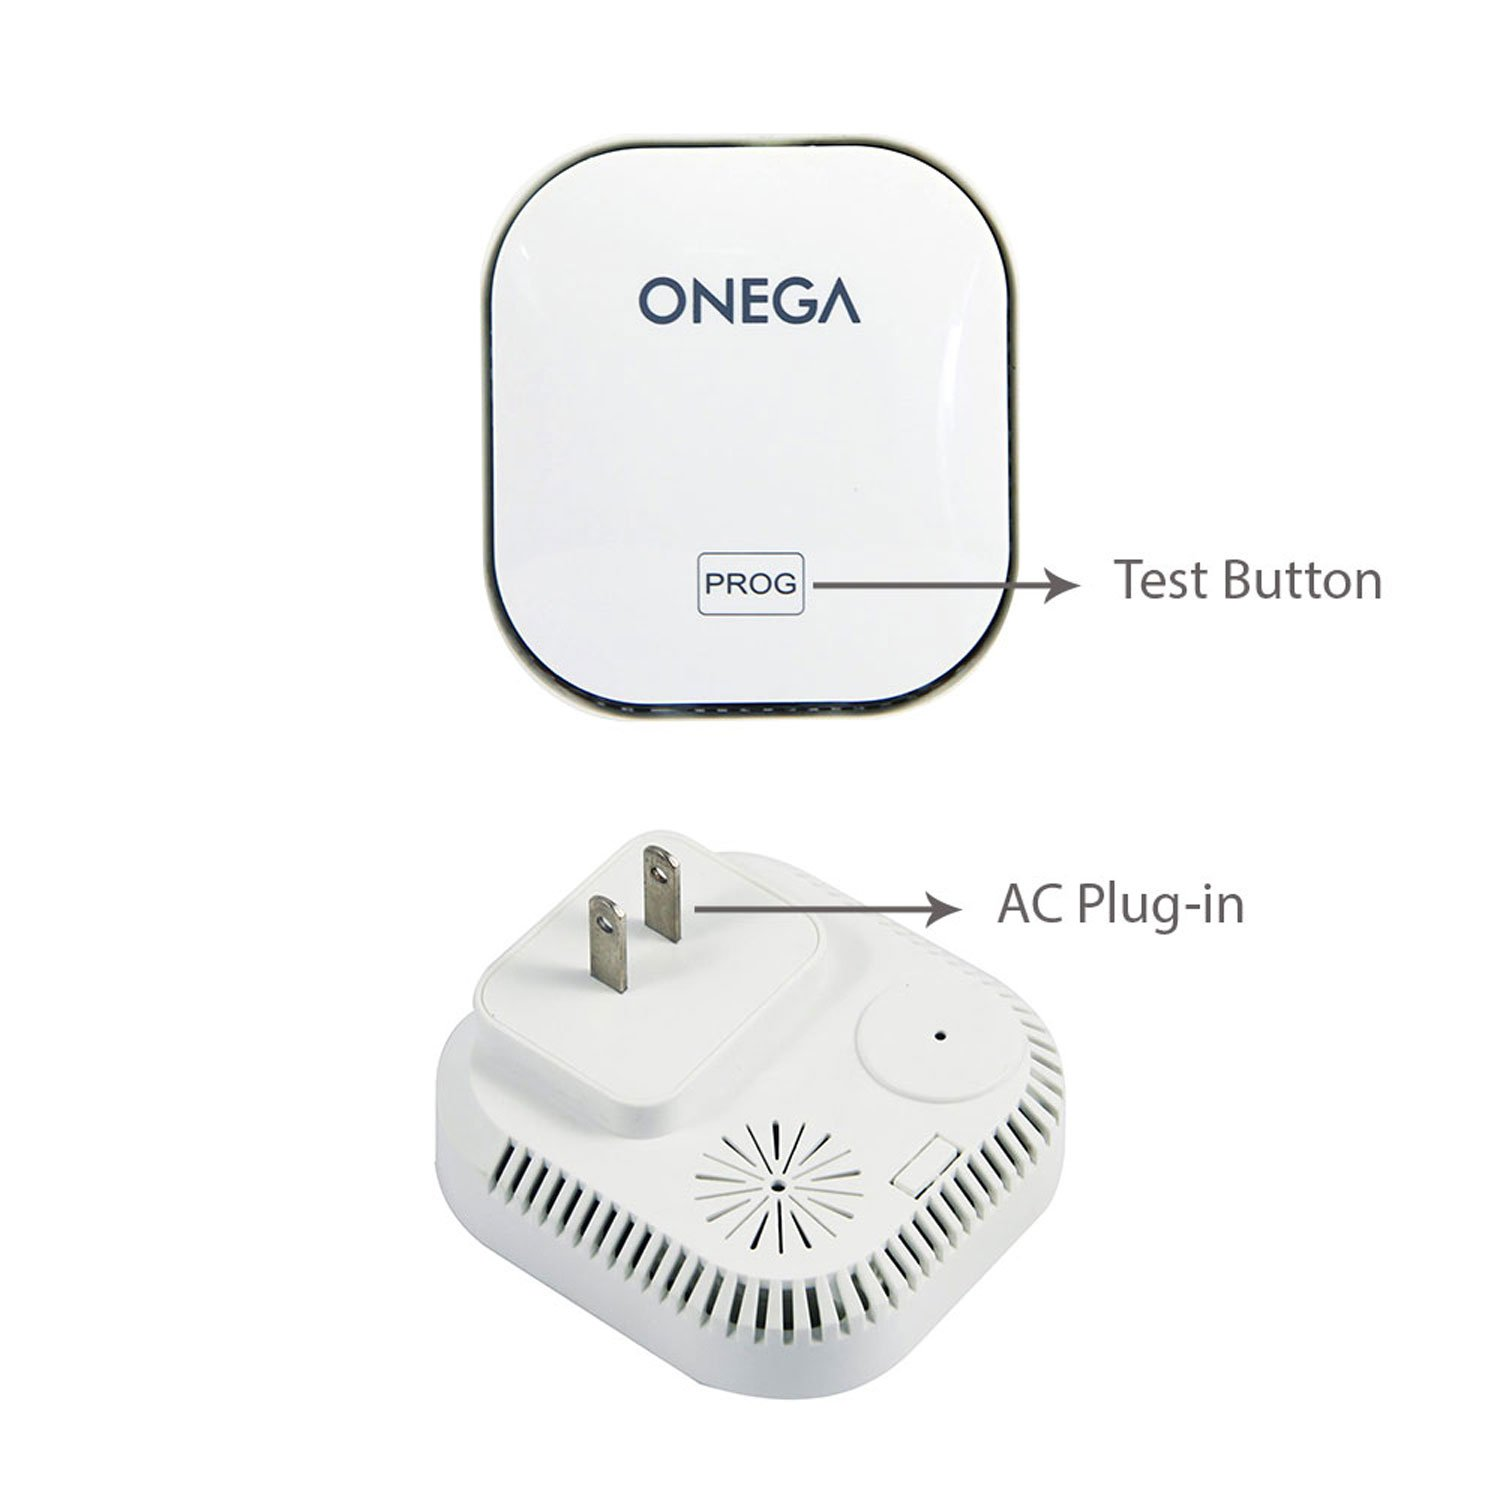 Carbon Monoxide Detector Alarm with Sound Warning and AC Plug-in Operated by Onega (Image #2)